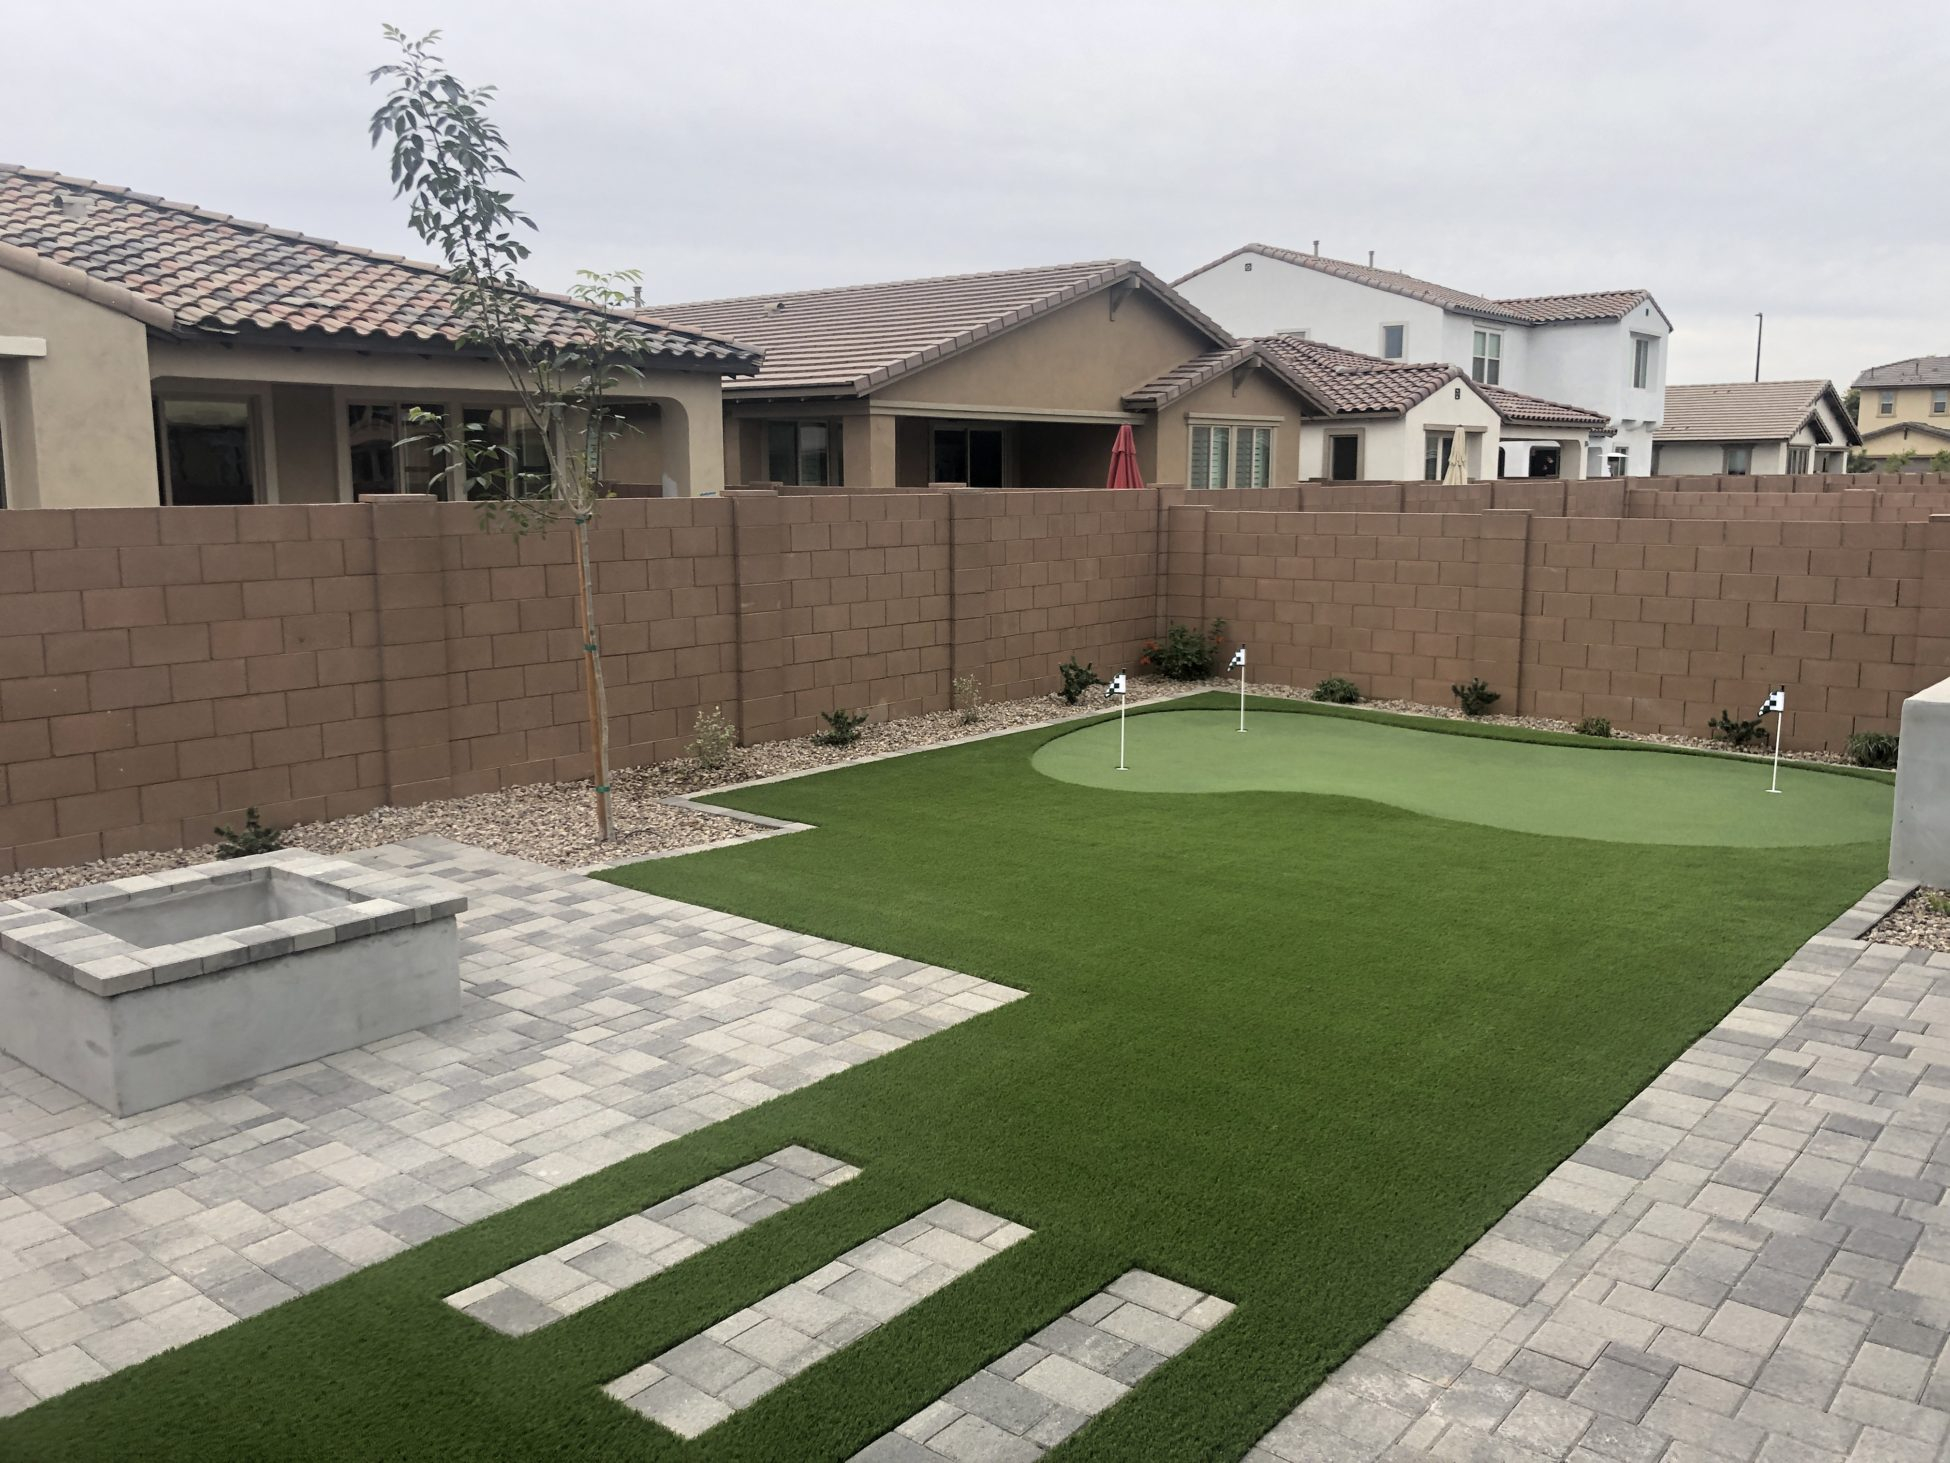 Phoenix Area Backyard Landscape Design Ideas And News within 11 Clever Designs of How to Upgrade Arizona Backyard Landscaping Ideas